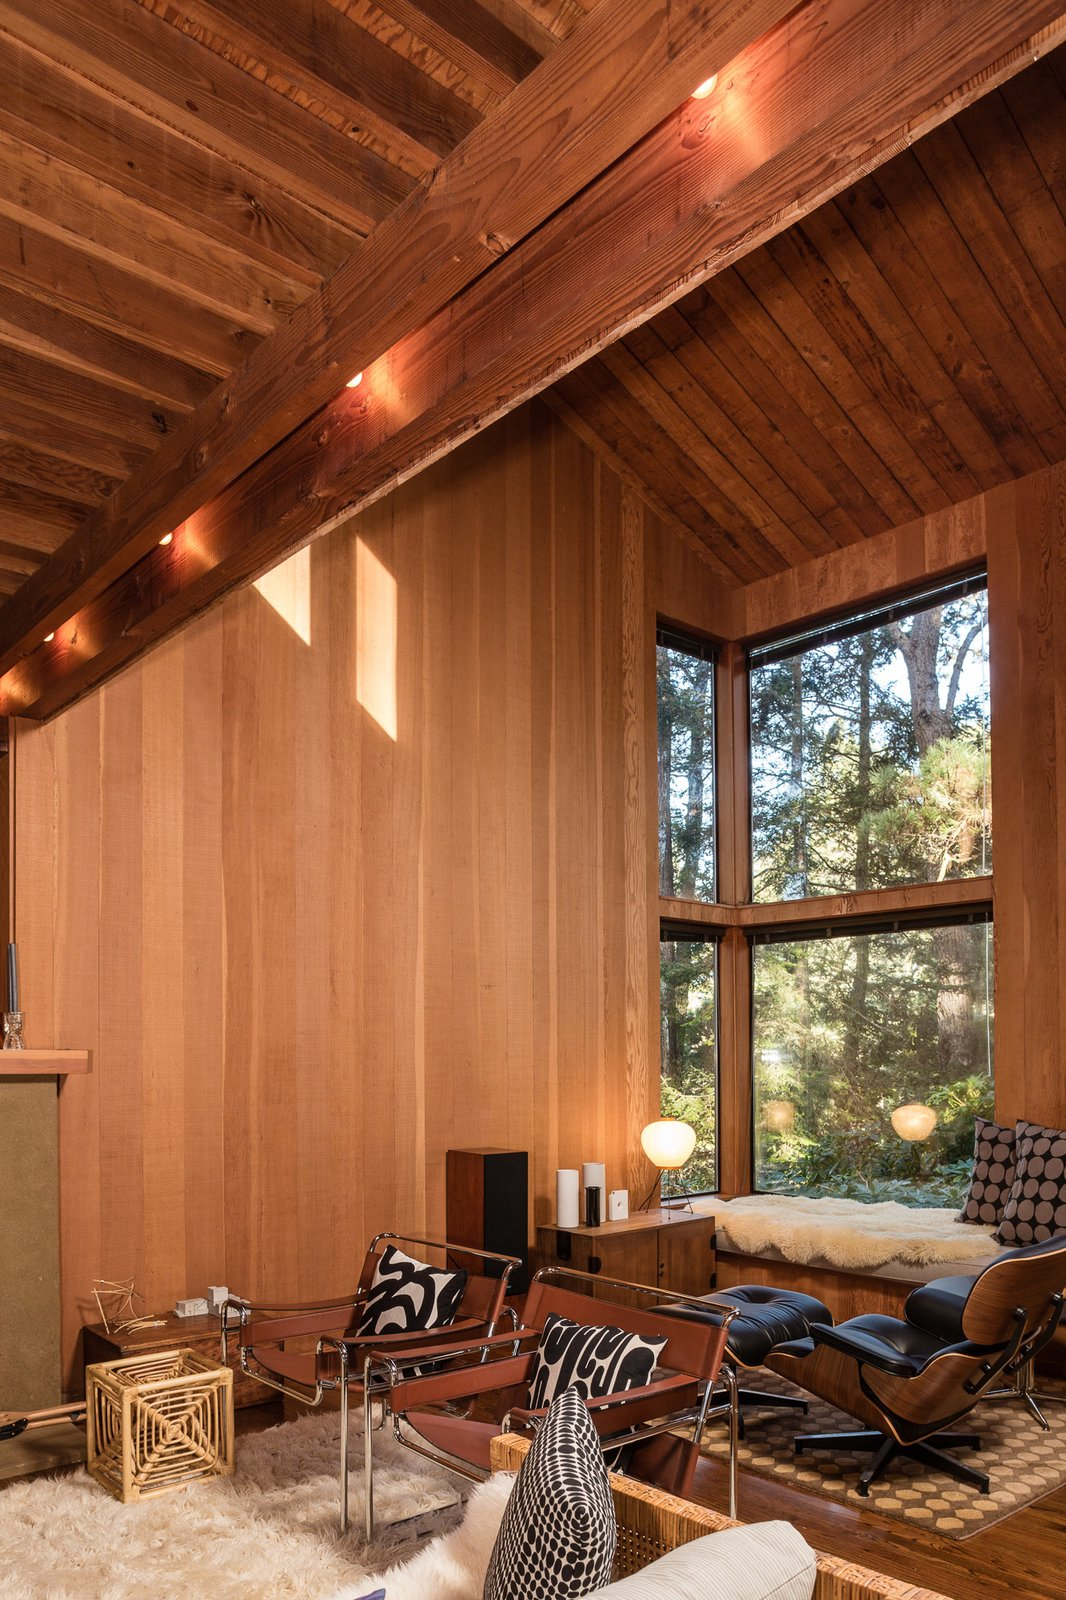 The high ceilings of the living area in the